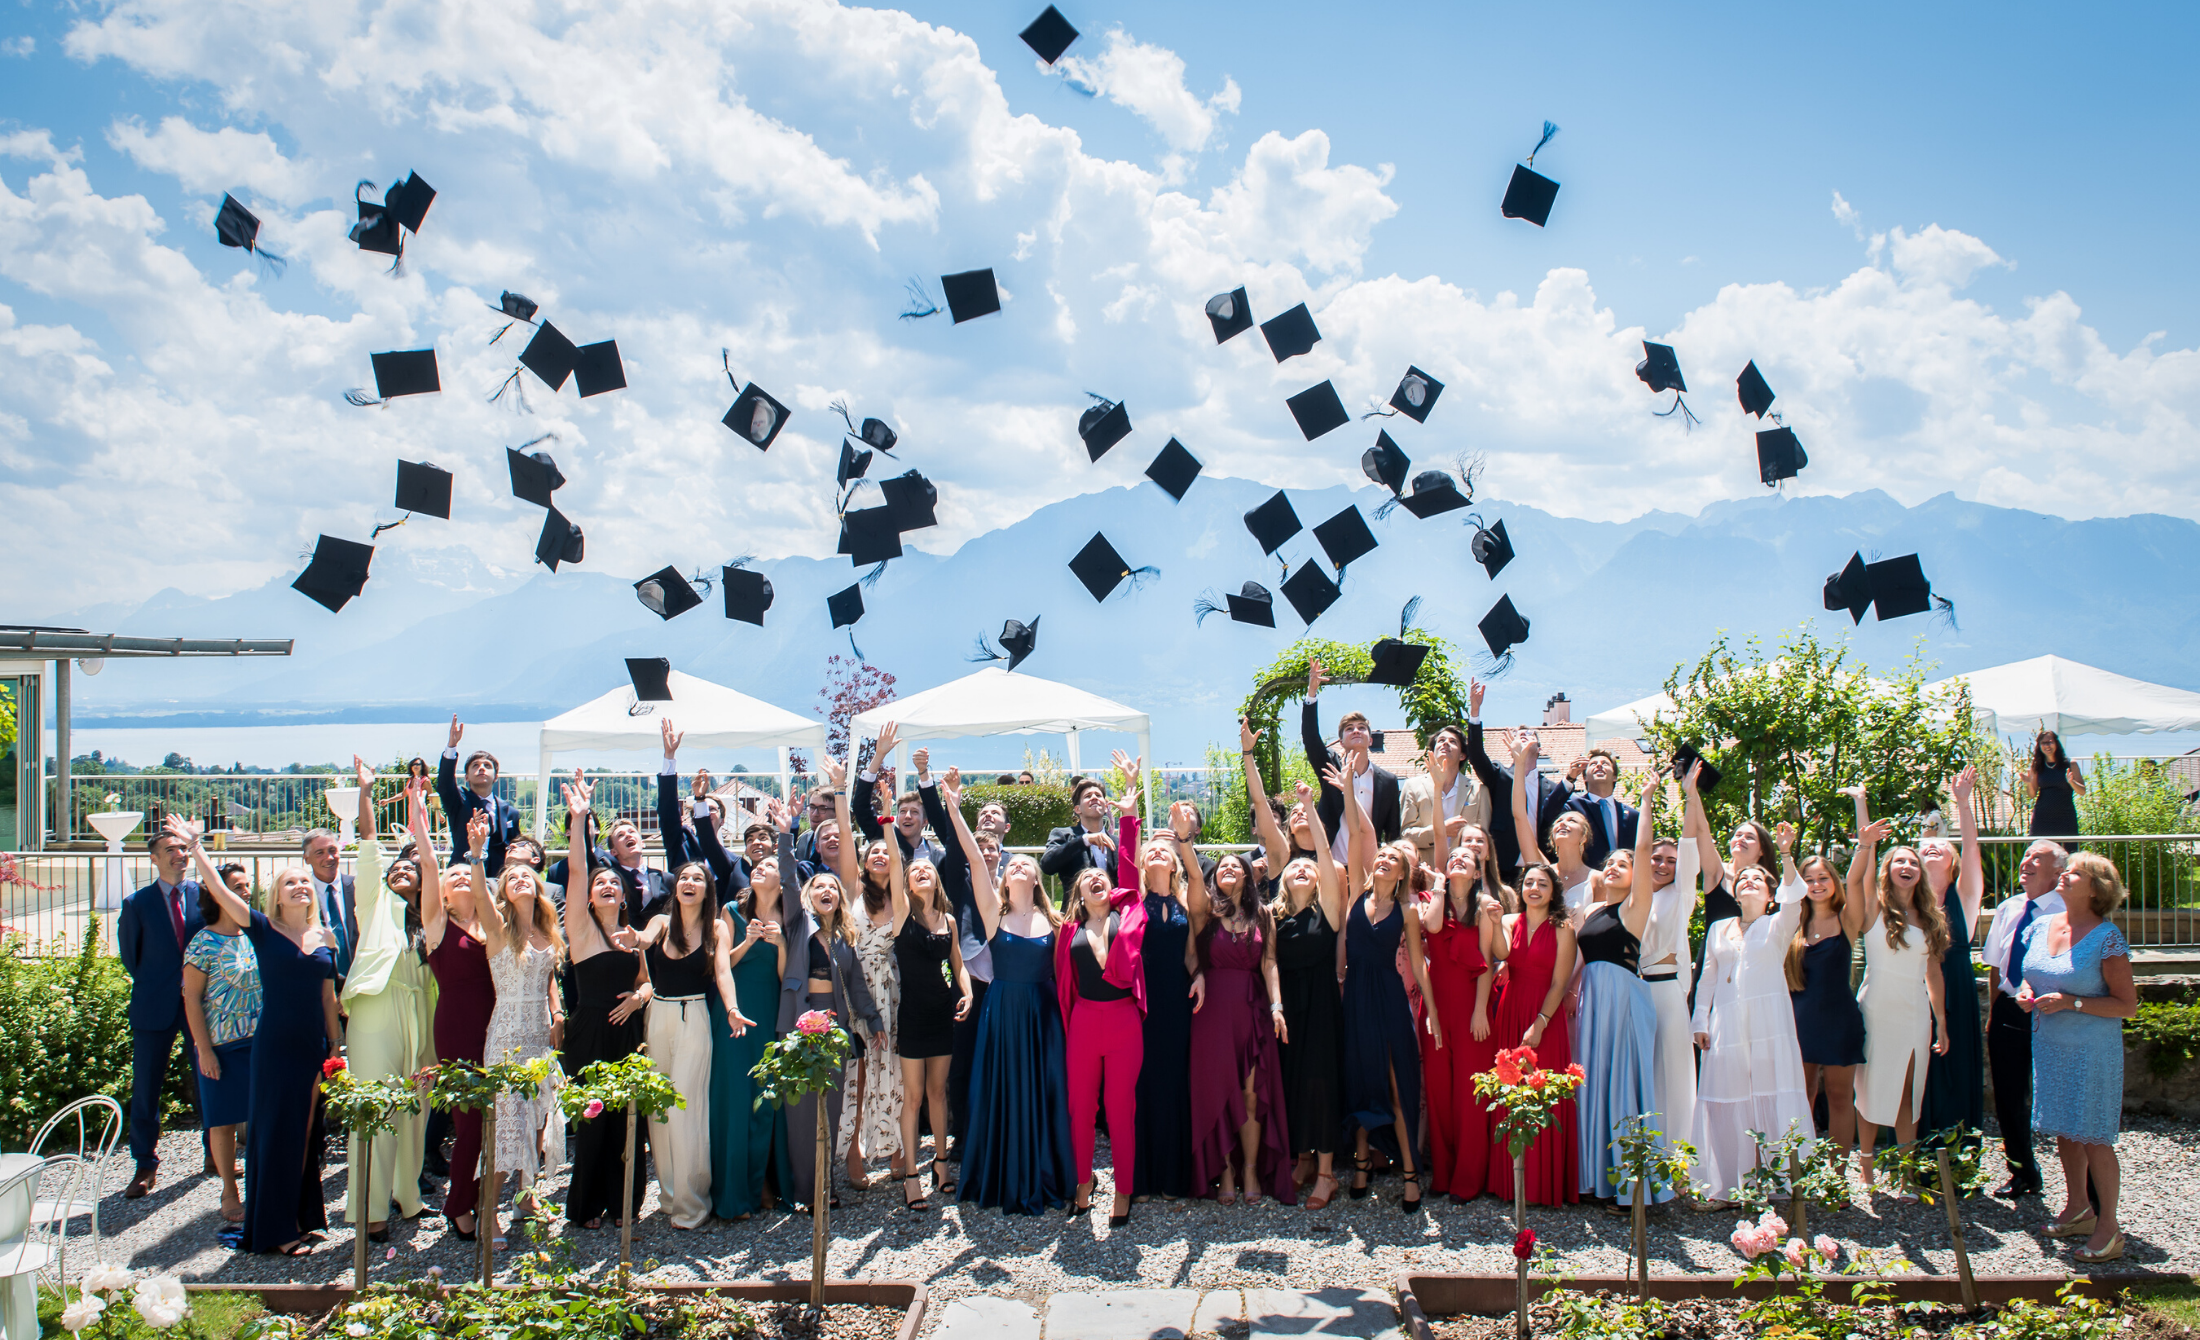 MEMORIES OF HAUT-LAC GRADUATIONS OVER THE YEARS